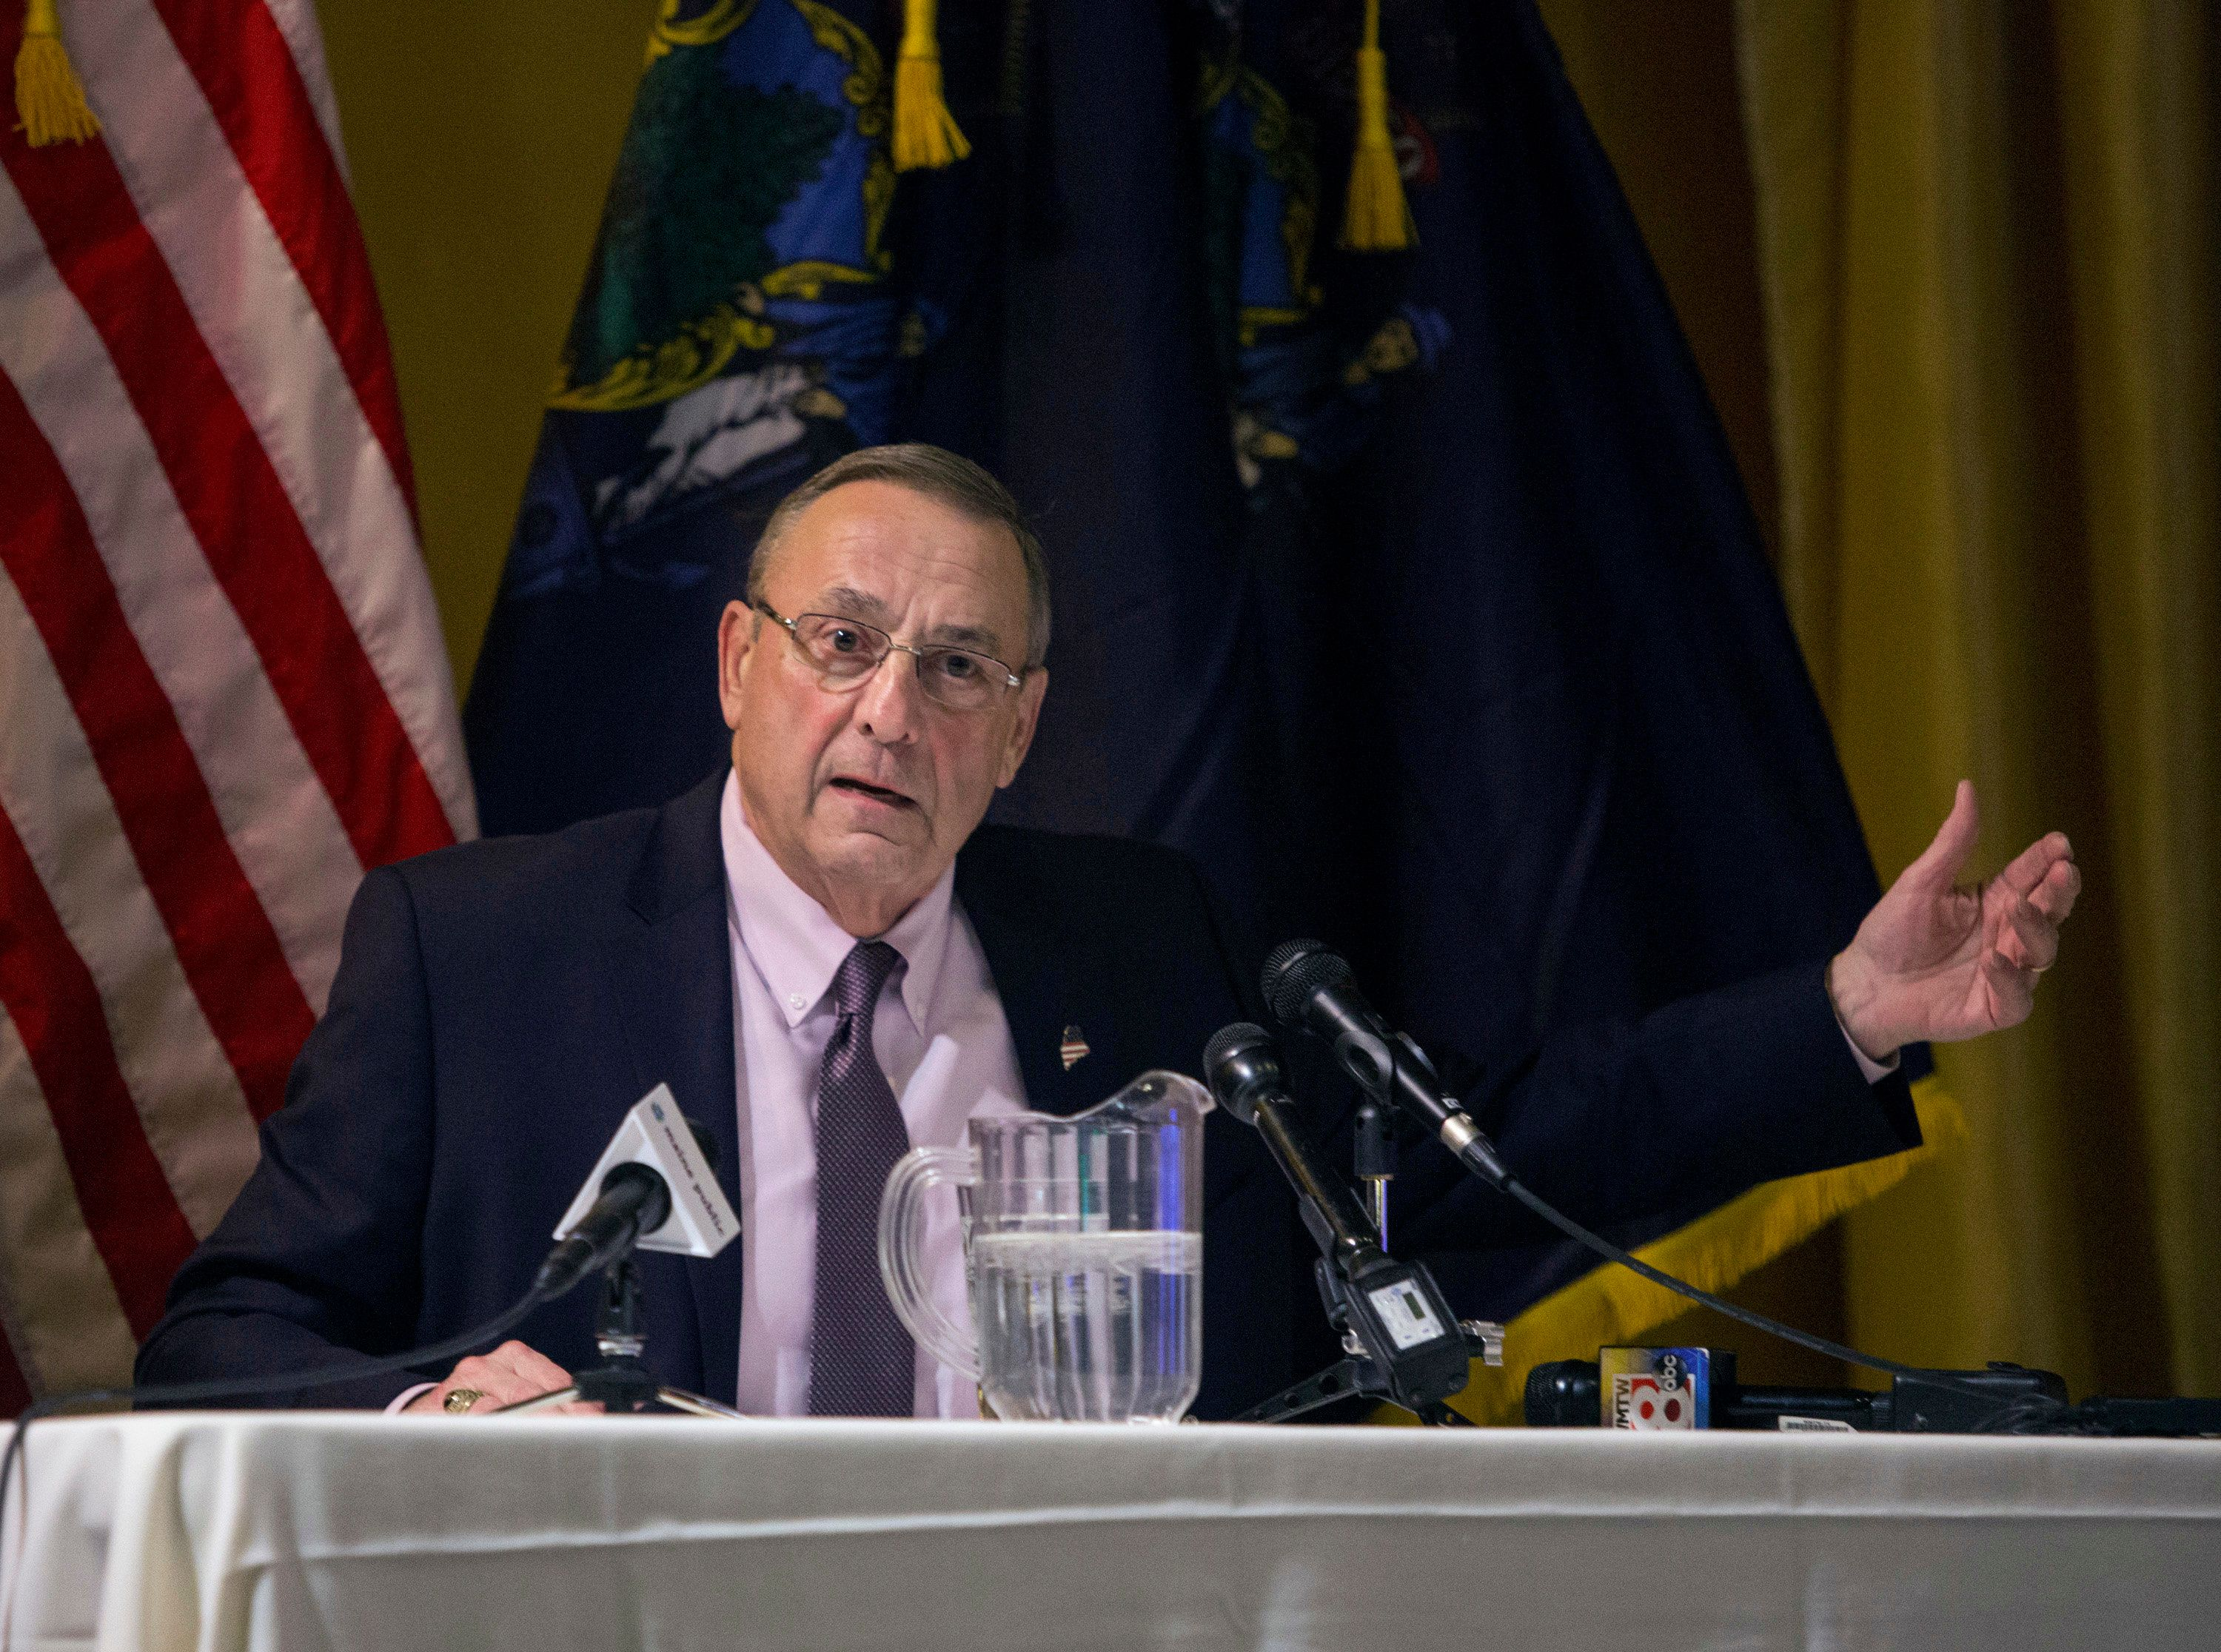 Maine Gov. Paul LePage is not a fan of the press.